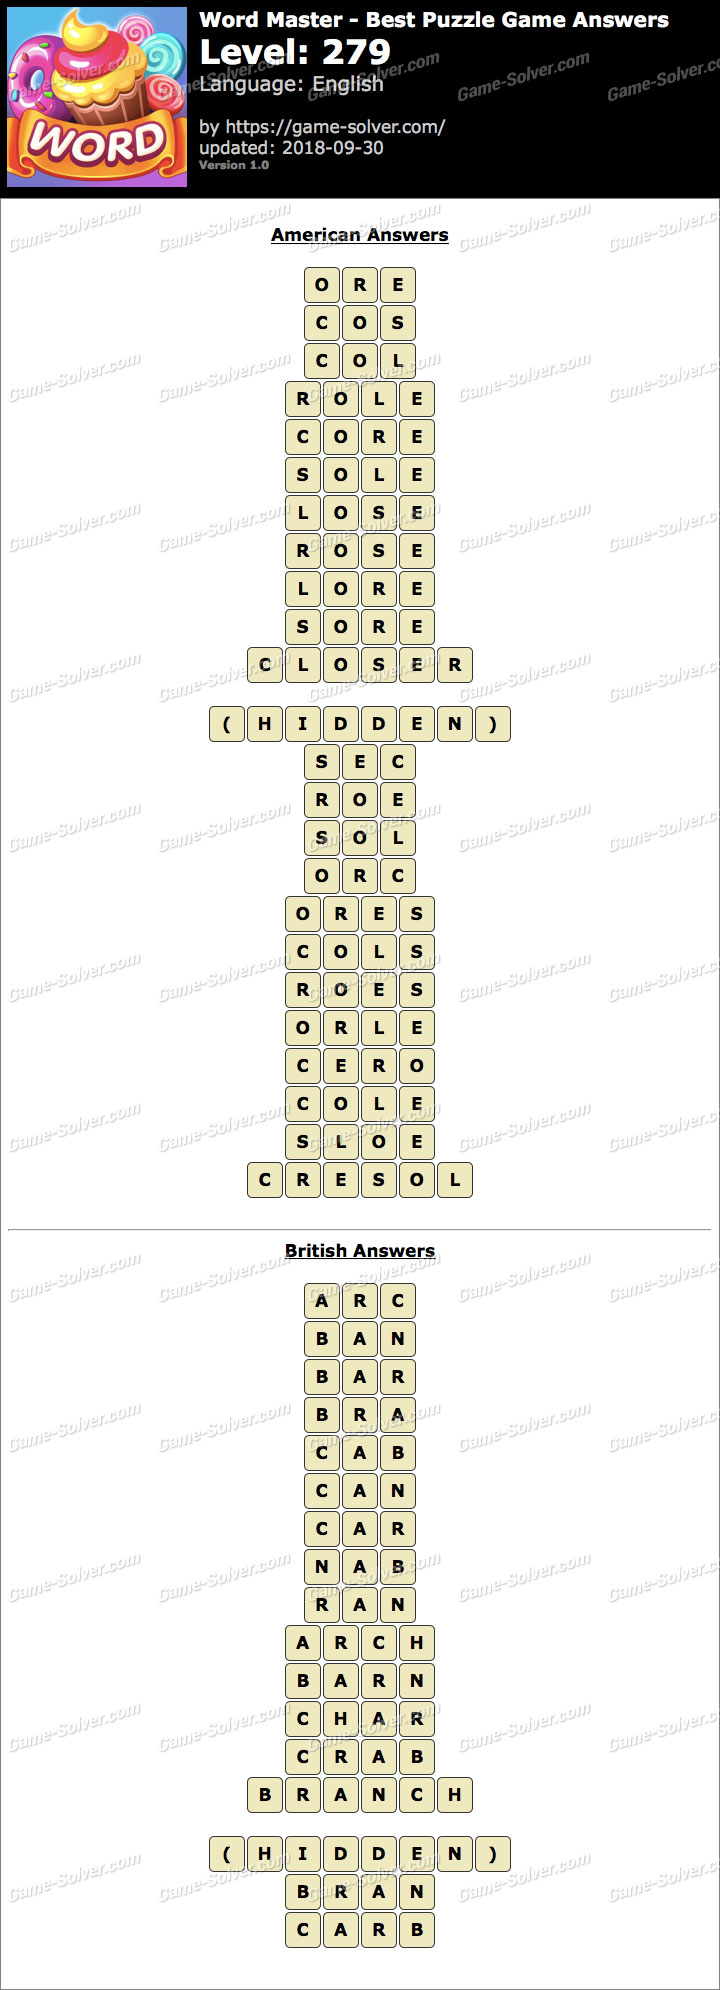 Word Master-Best Puzzle Game Level 279 Answers